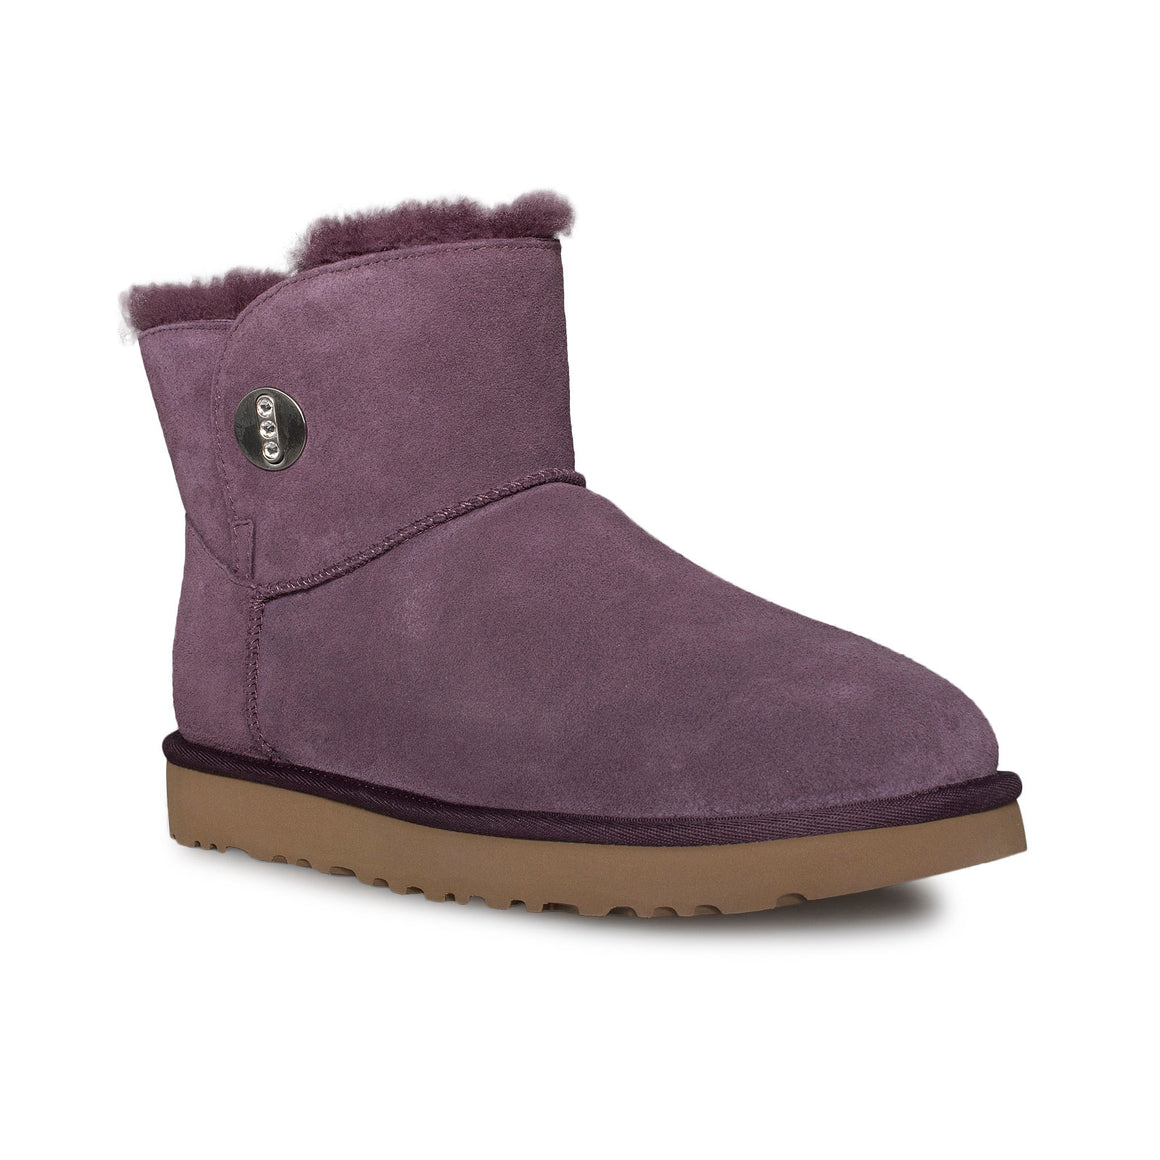 UGG Mini Turnlock Bling Port Boots - Women's